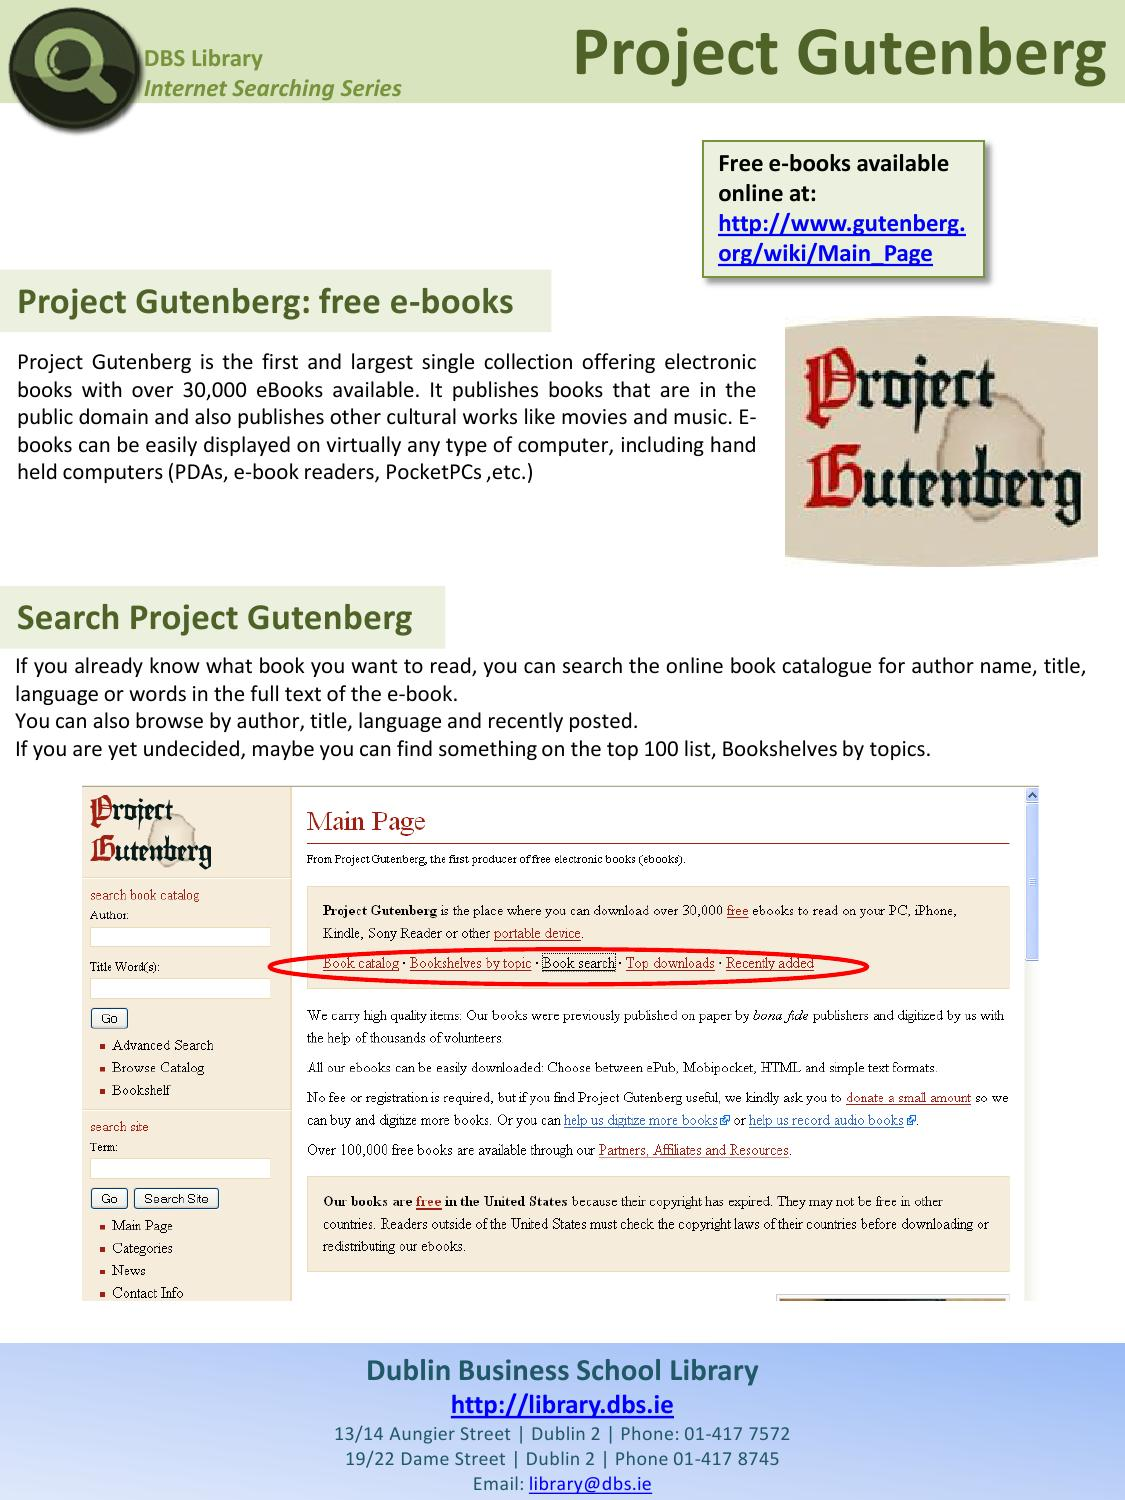 the project gutenberg Project gutenberg central - ebooks copyright © world library foundation all rights reserved ebooks from project gutenberg central are sponsored by the world.